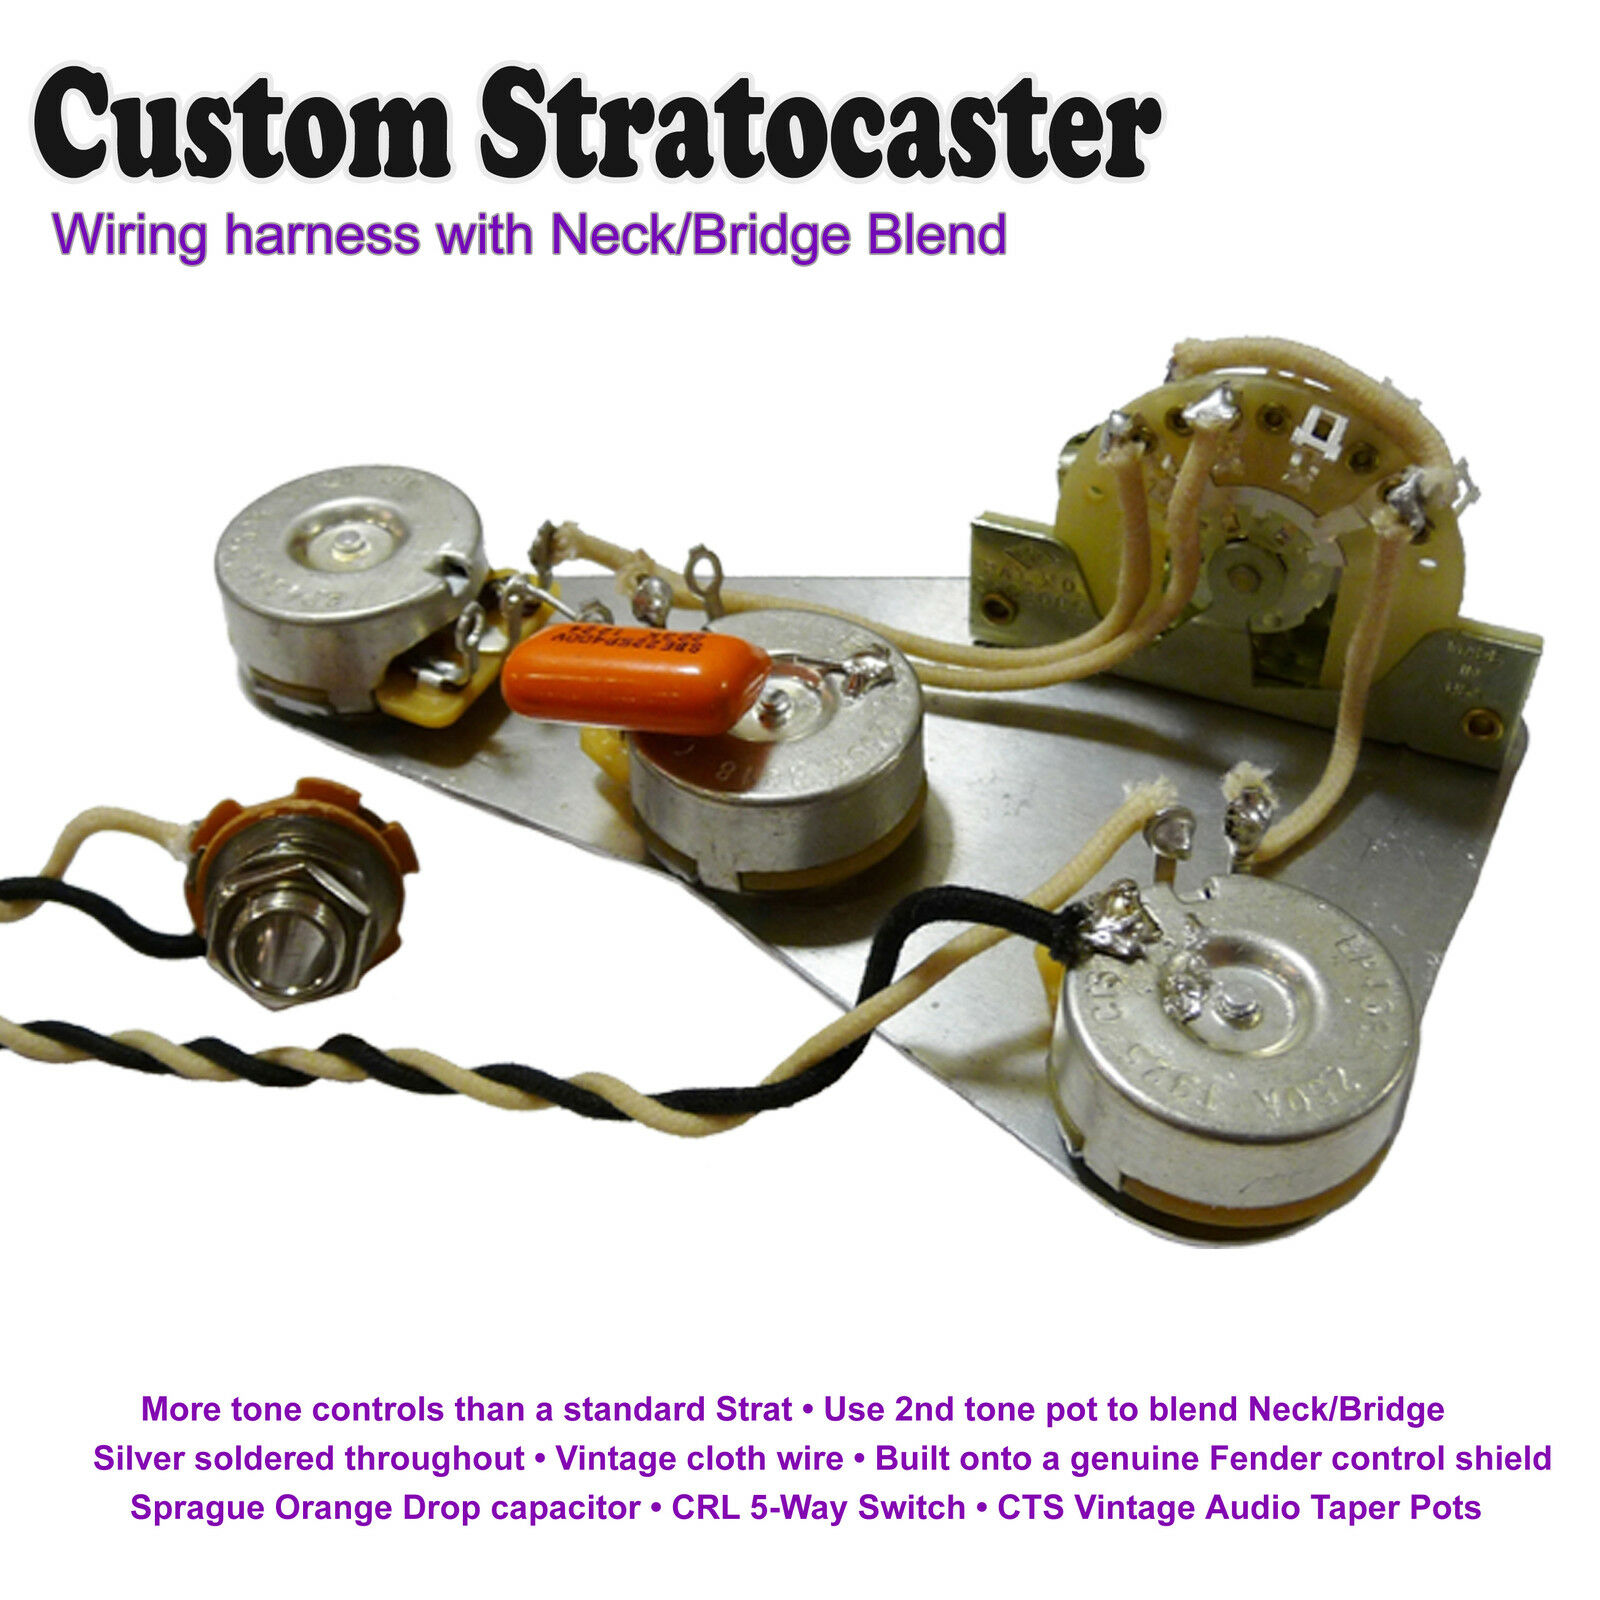 Deluxe Pre Wired Stratocaster Strat Wiring Kit With Neck Bridge Custom Built Harness 1 Of 2 See More